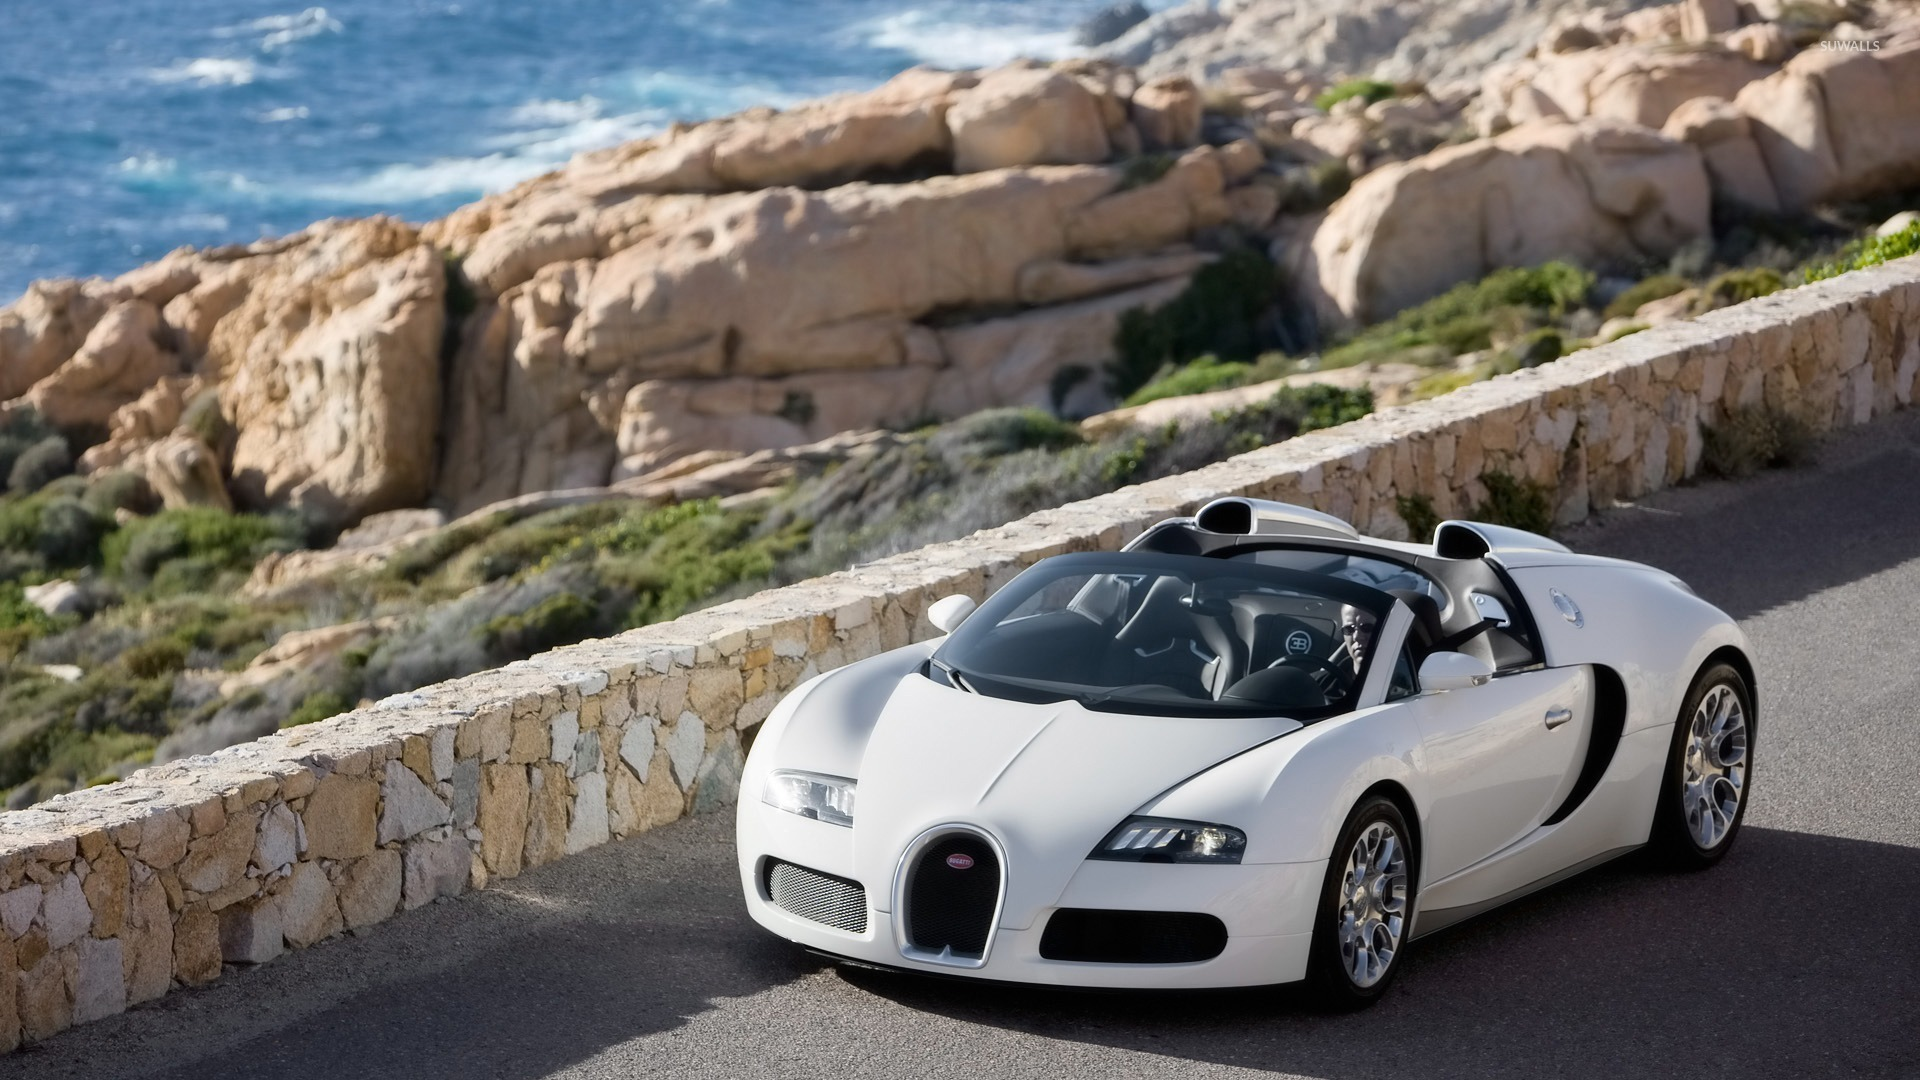 bugatti veyron cabrio wallpaper car wallpapers 1573. Black Bedroom Furniture Sets. Home Design Ideas